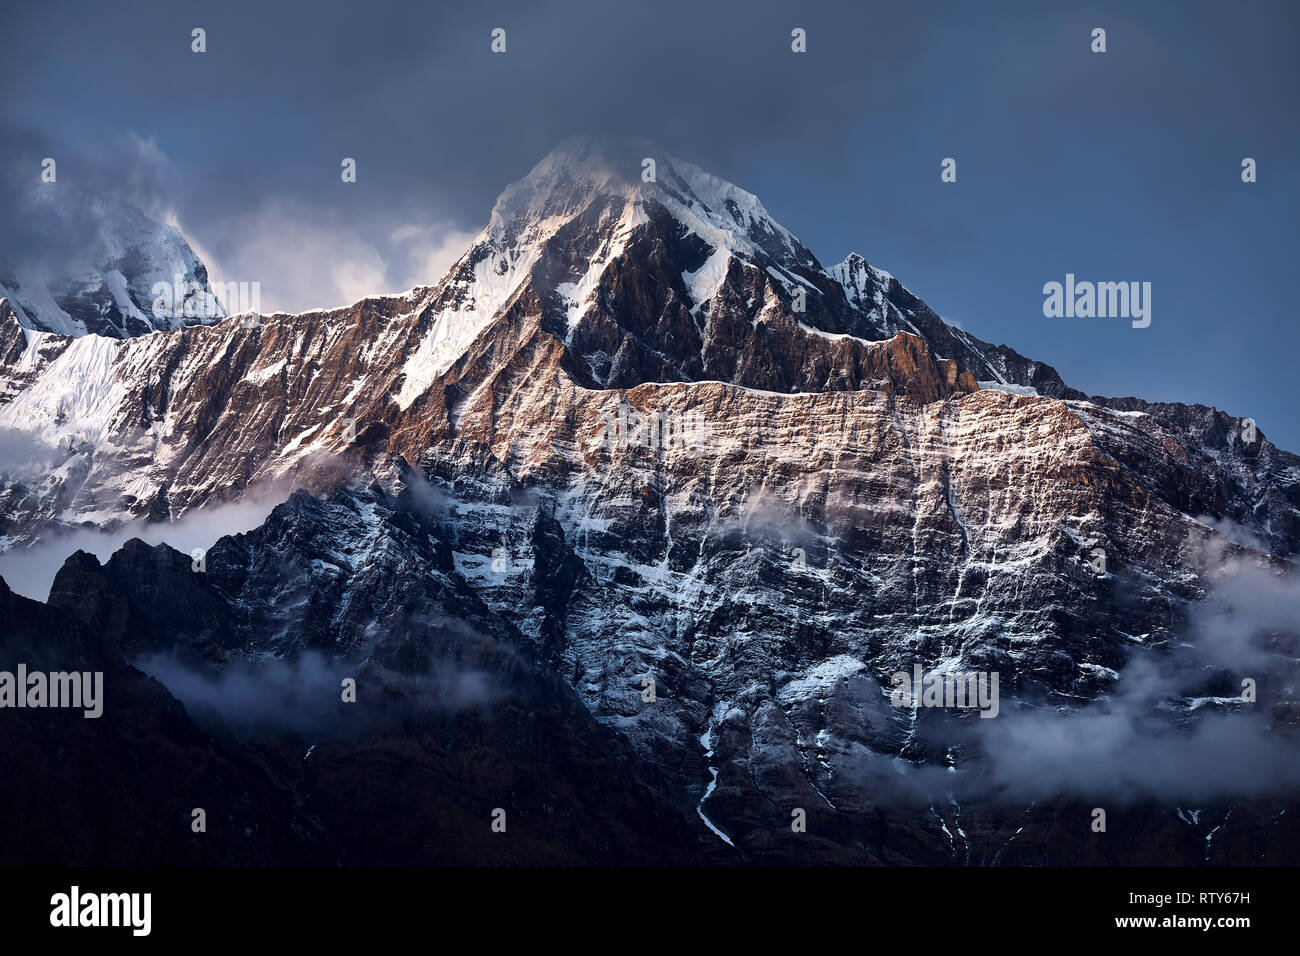 Beautiful landscape of Himalaya Mountain Annapurna surrounded by clouds in Nepal - Stock Image